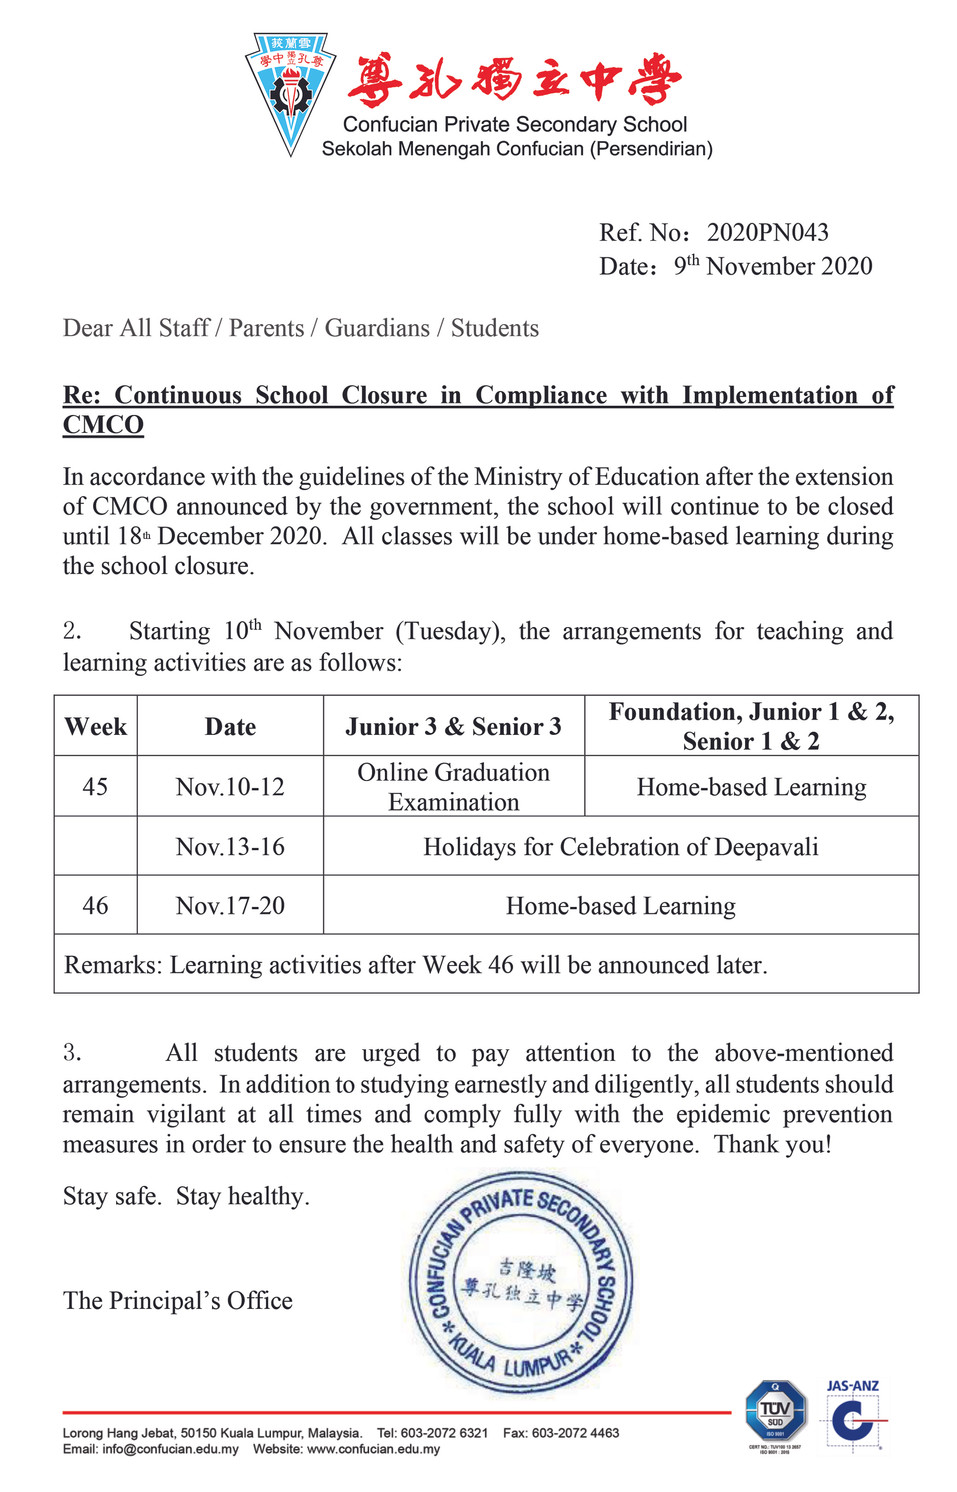 Continuous School Closure in Compliance with Implementation of CMCO